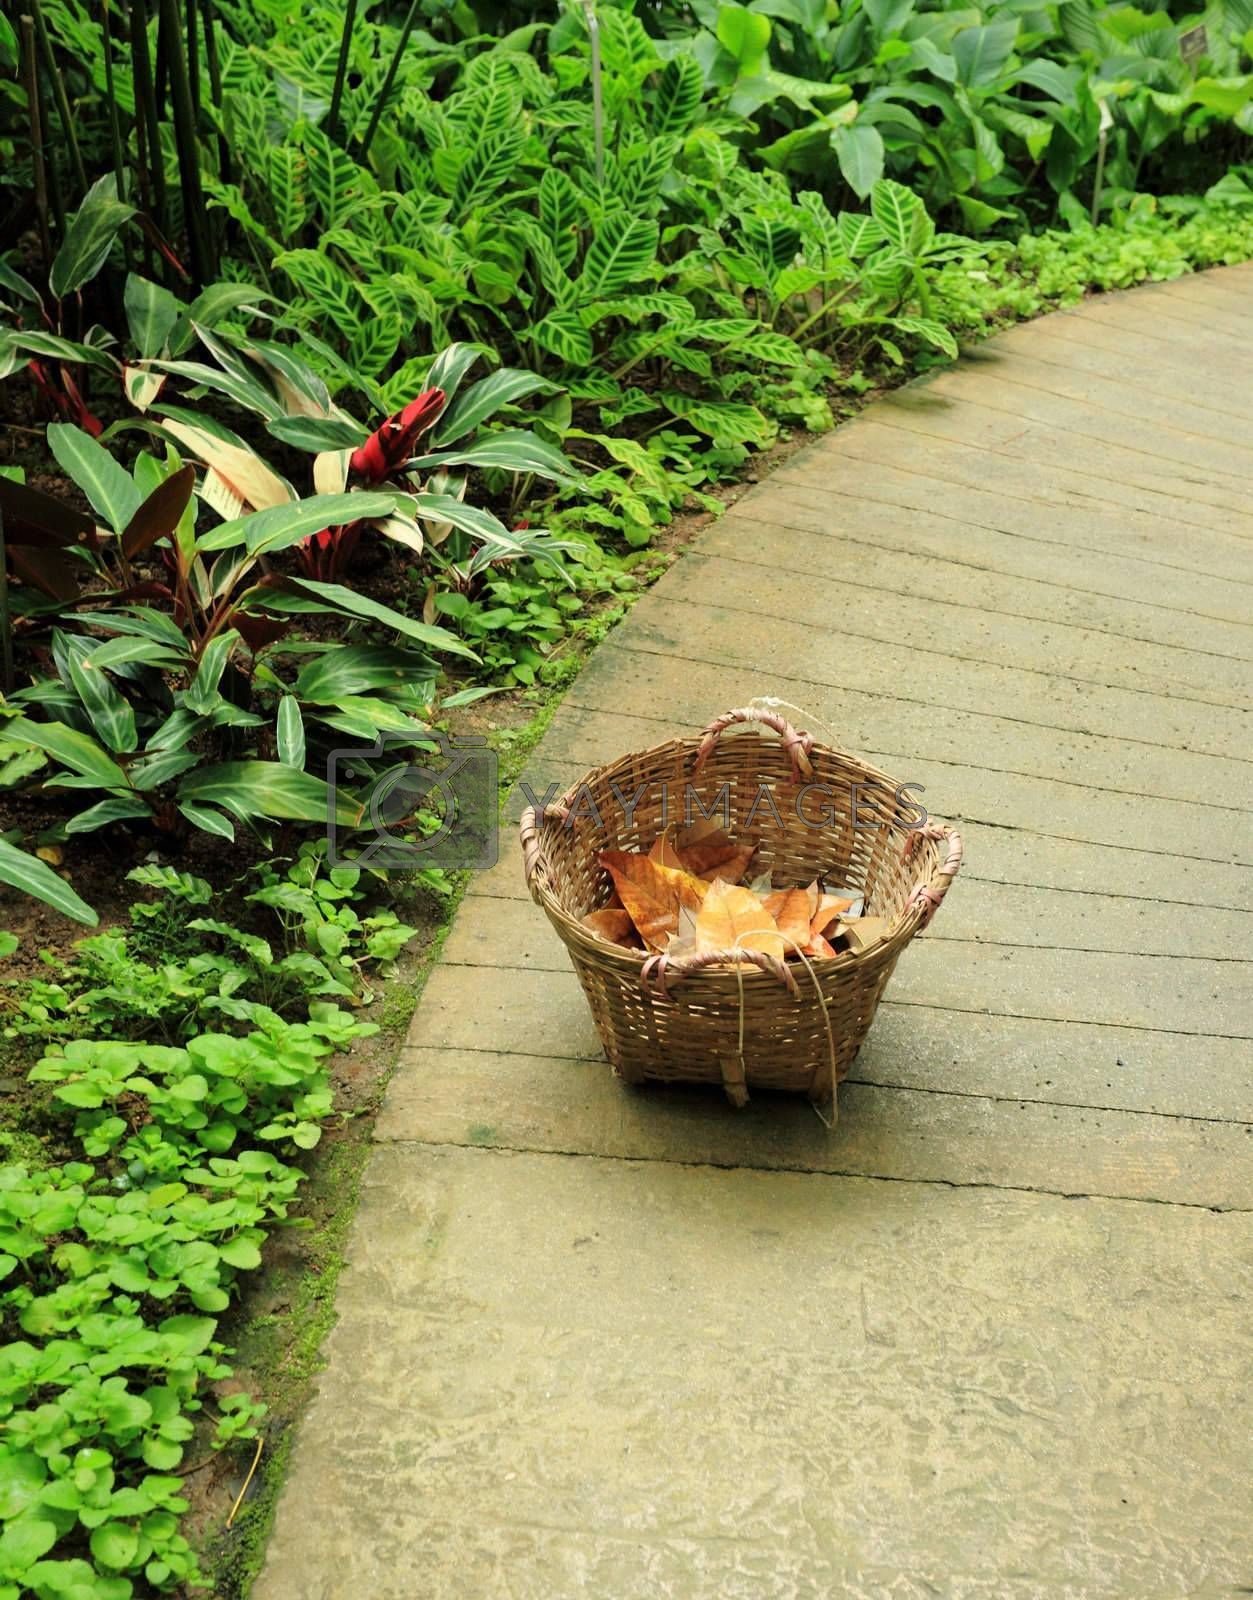 basket in garedn with dry leaf by leungchopan